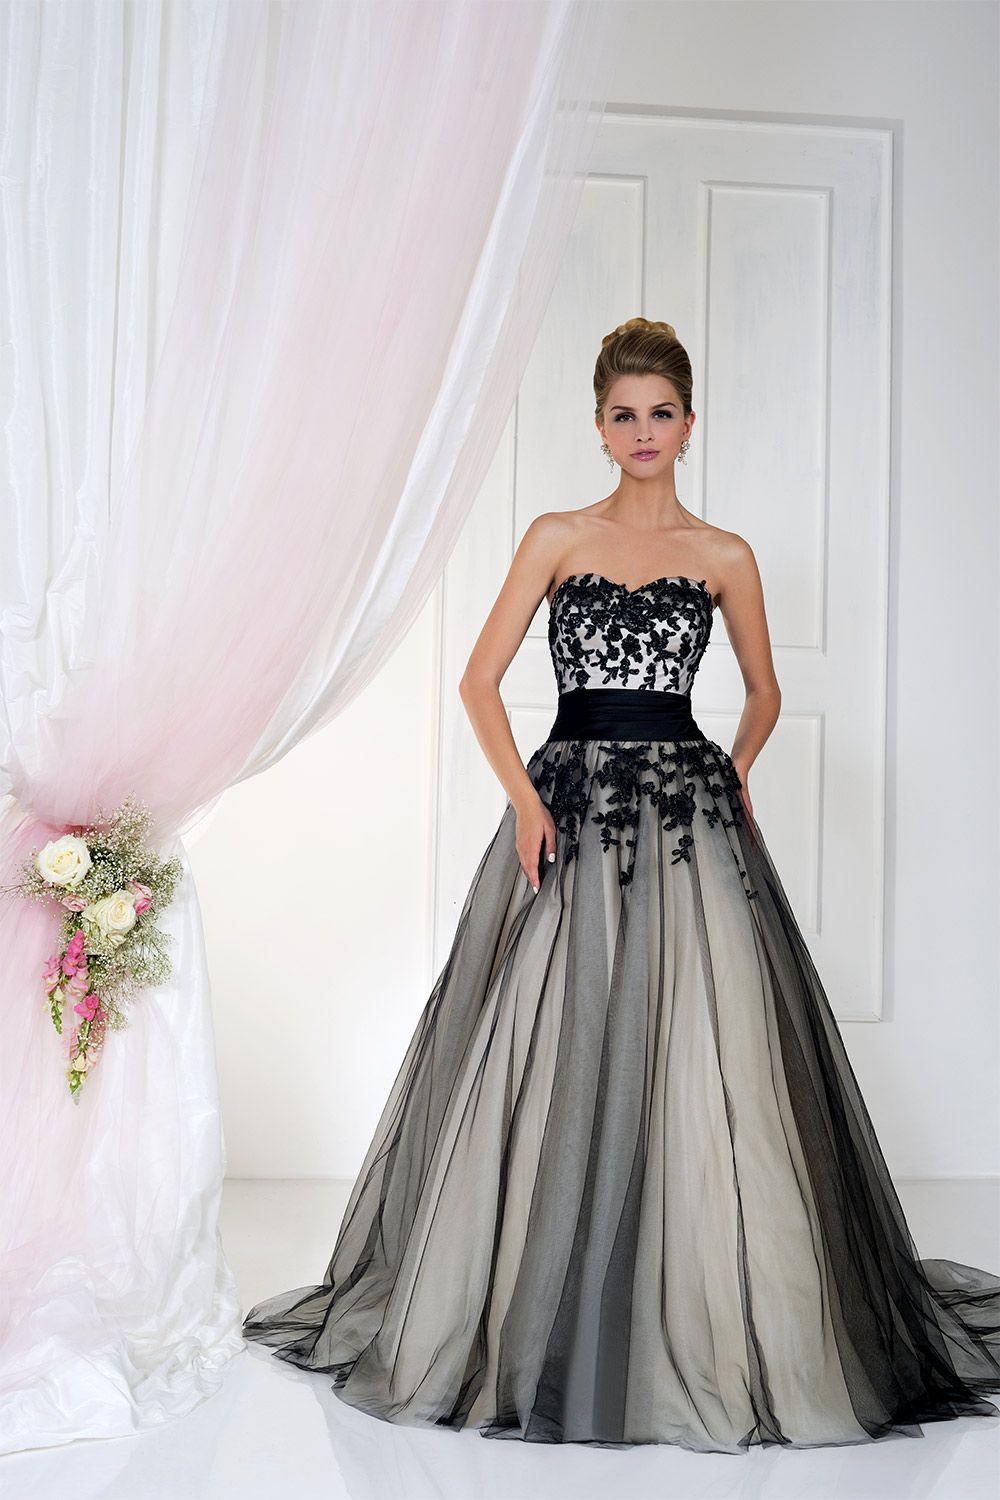 gothic wedding dresses Gothic Wedding Dresses 15 Dramatic Gowns